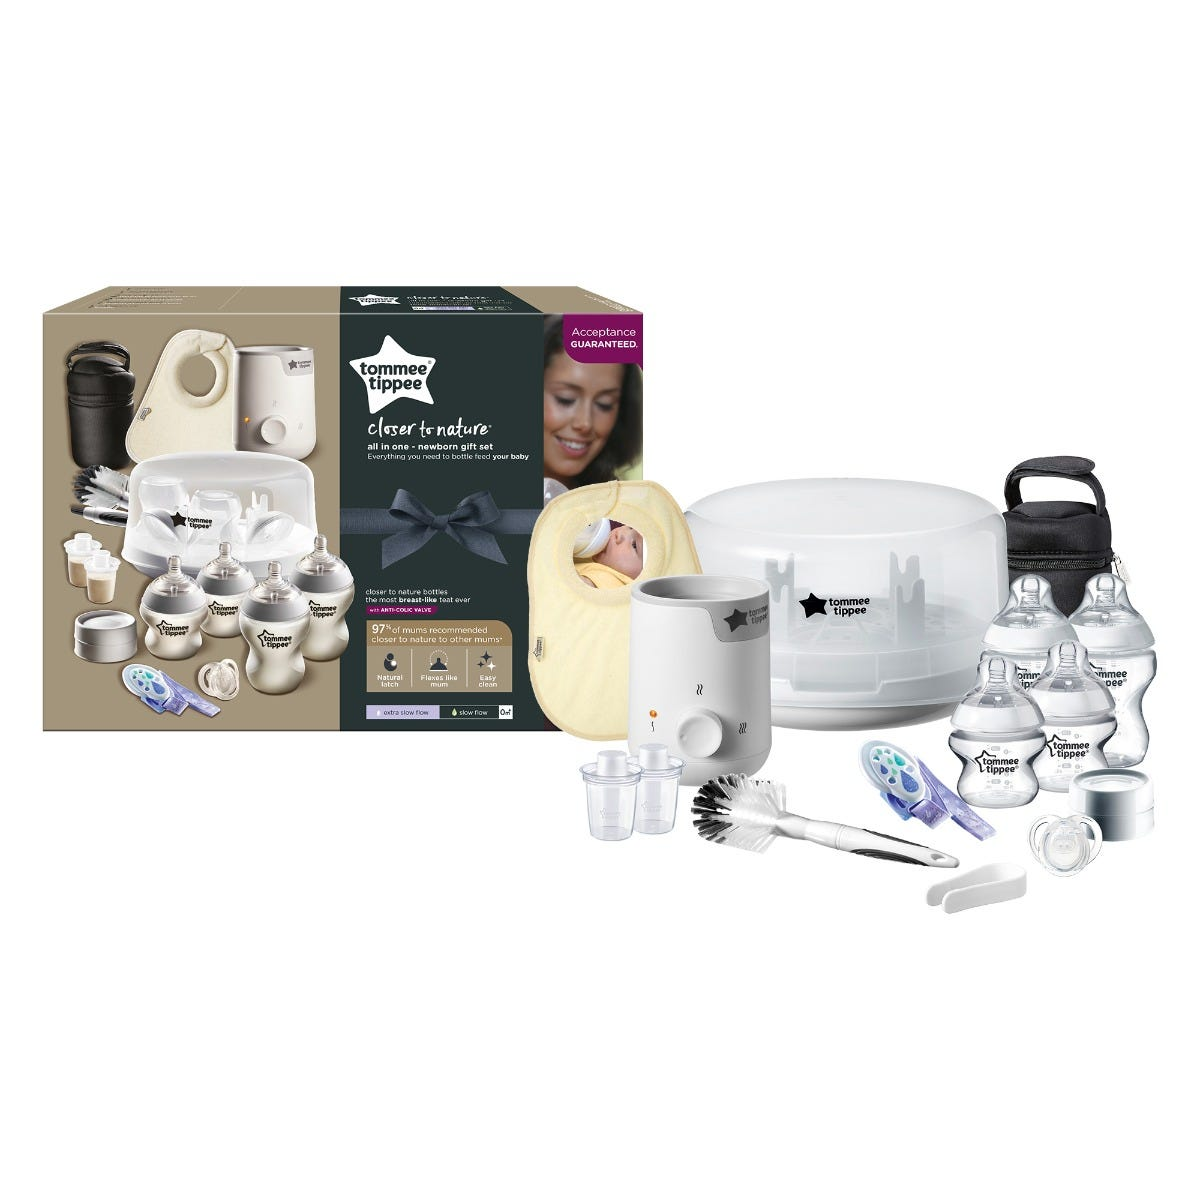 Closer to Nature All-in-One Newborn Gift Set with packaging